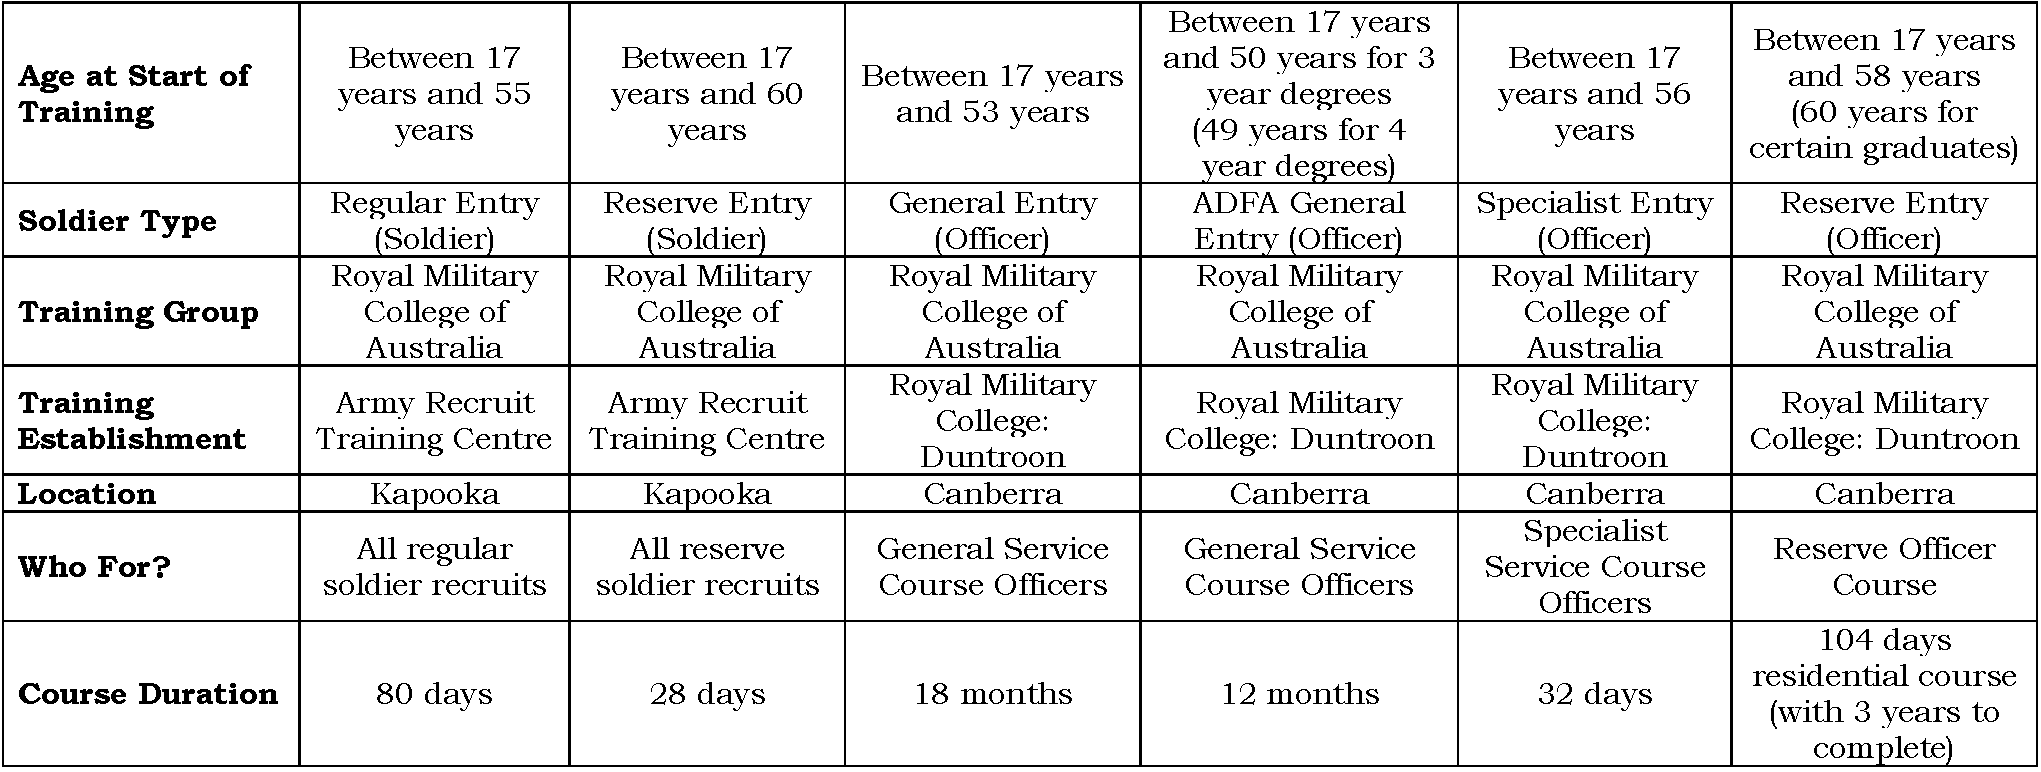 Military Training by Age